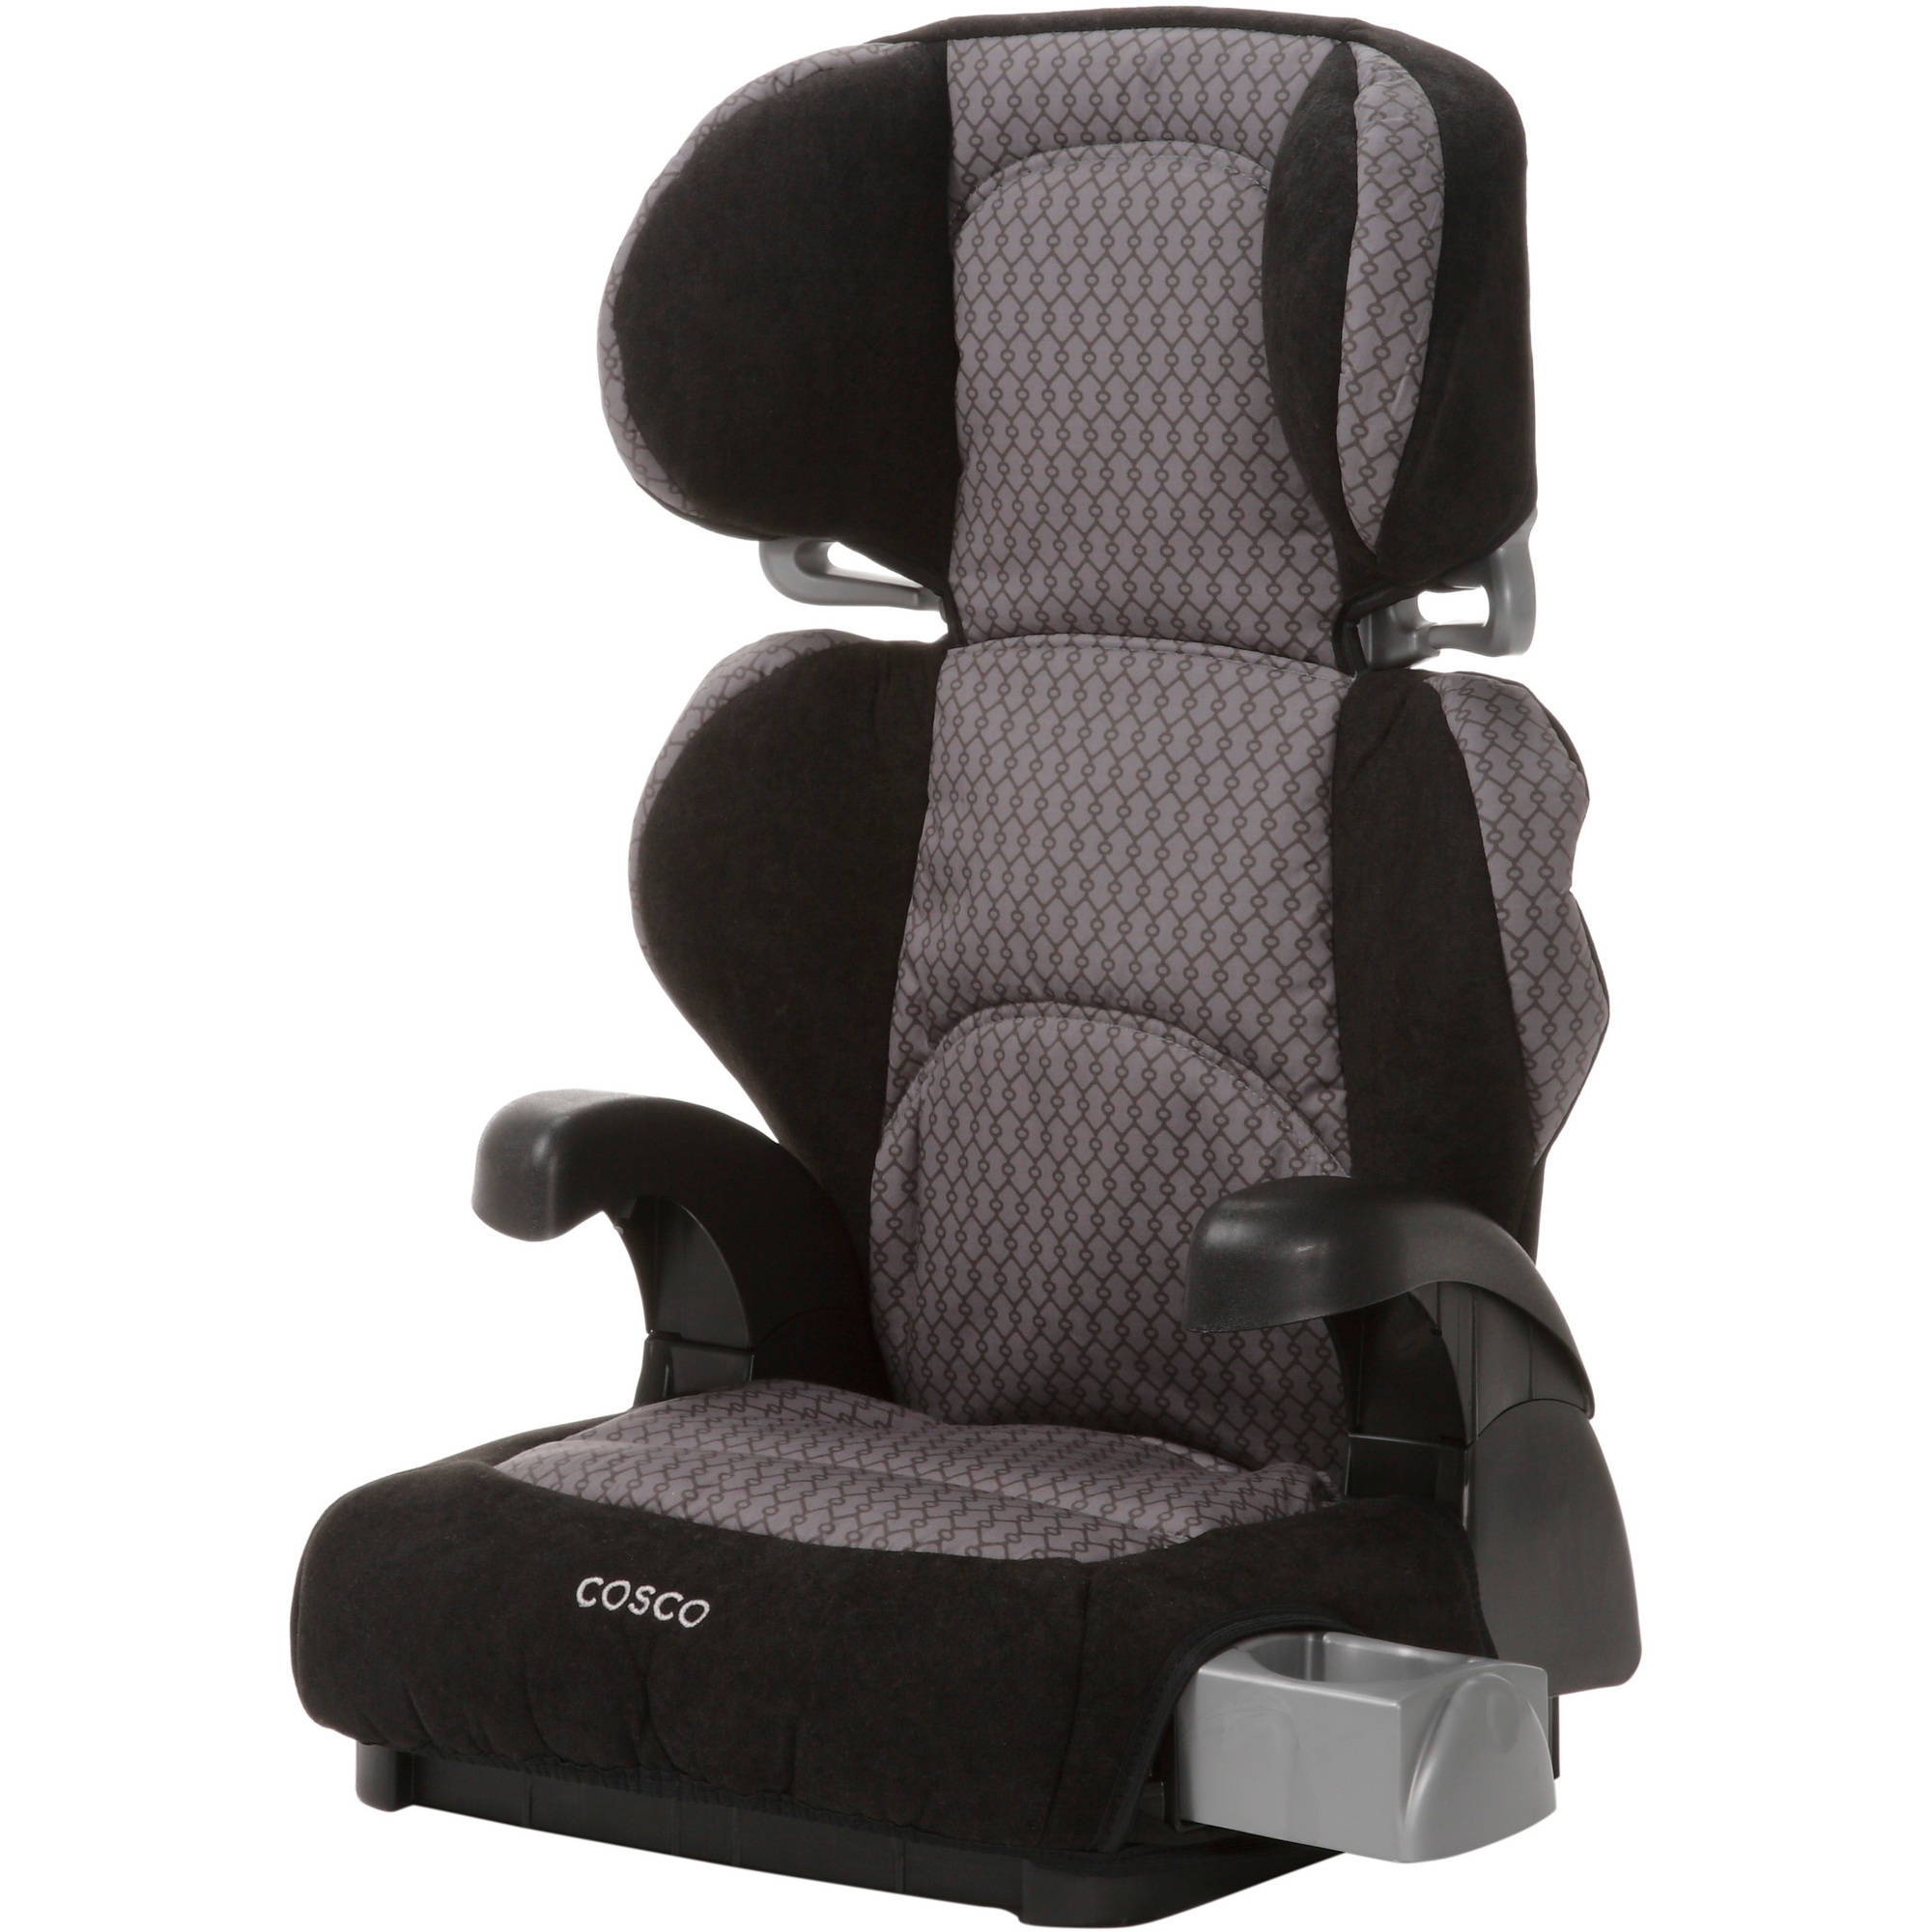 Cosco Pronto! Booster Car Seat for Children, Adjustable Headrest, Integrated Cup Holders